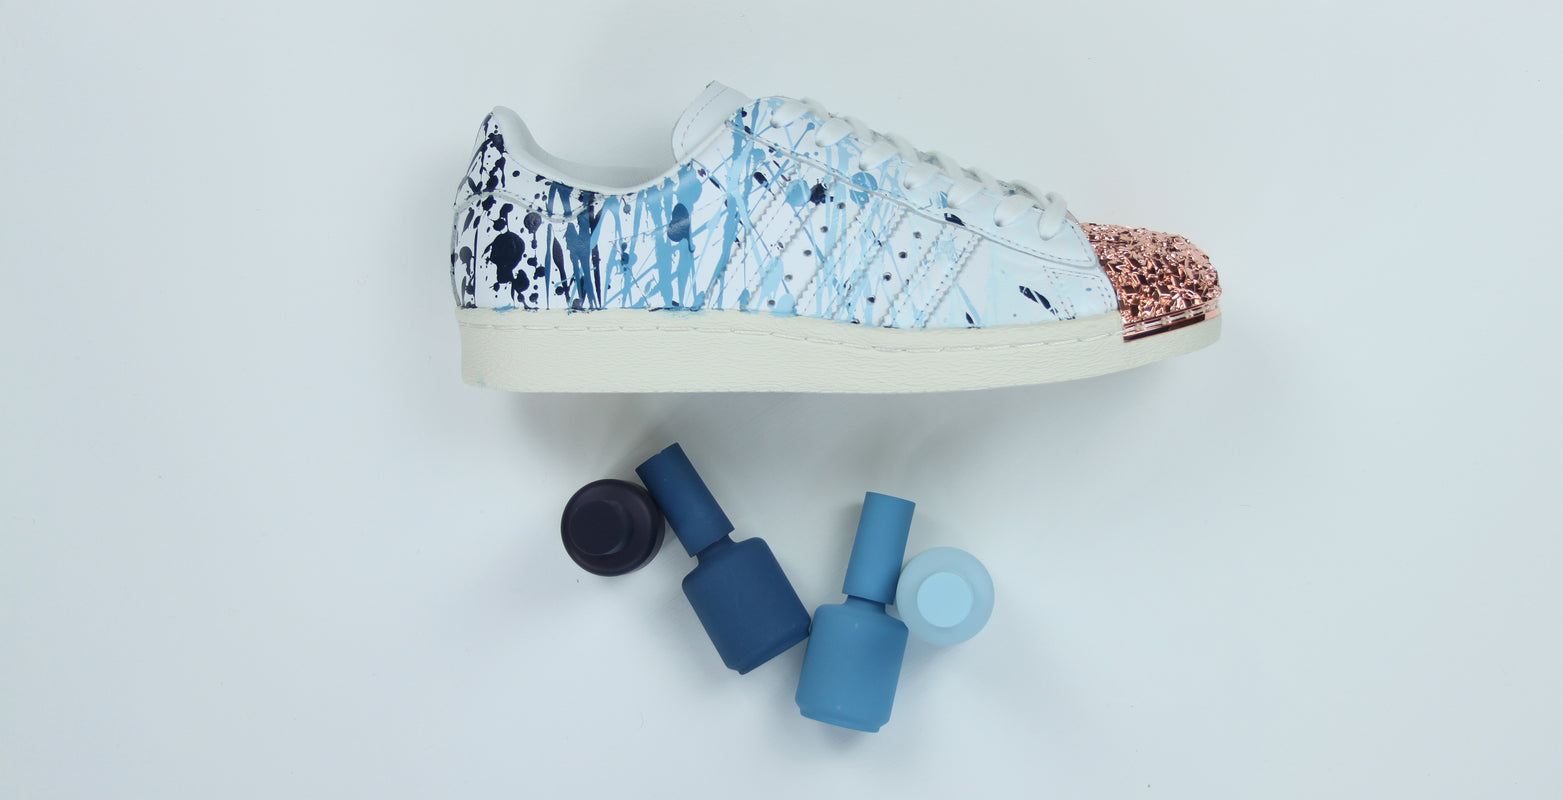 TheShoeCosmetics Hand Painted Blue Ombre Splatter Adidas Superstar Custom Sneakers